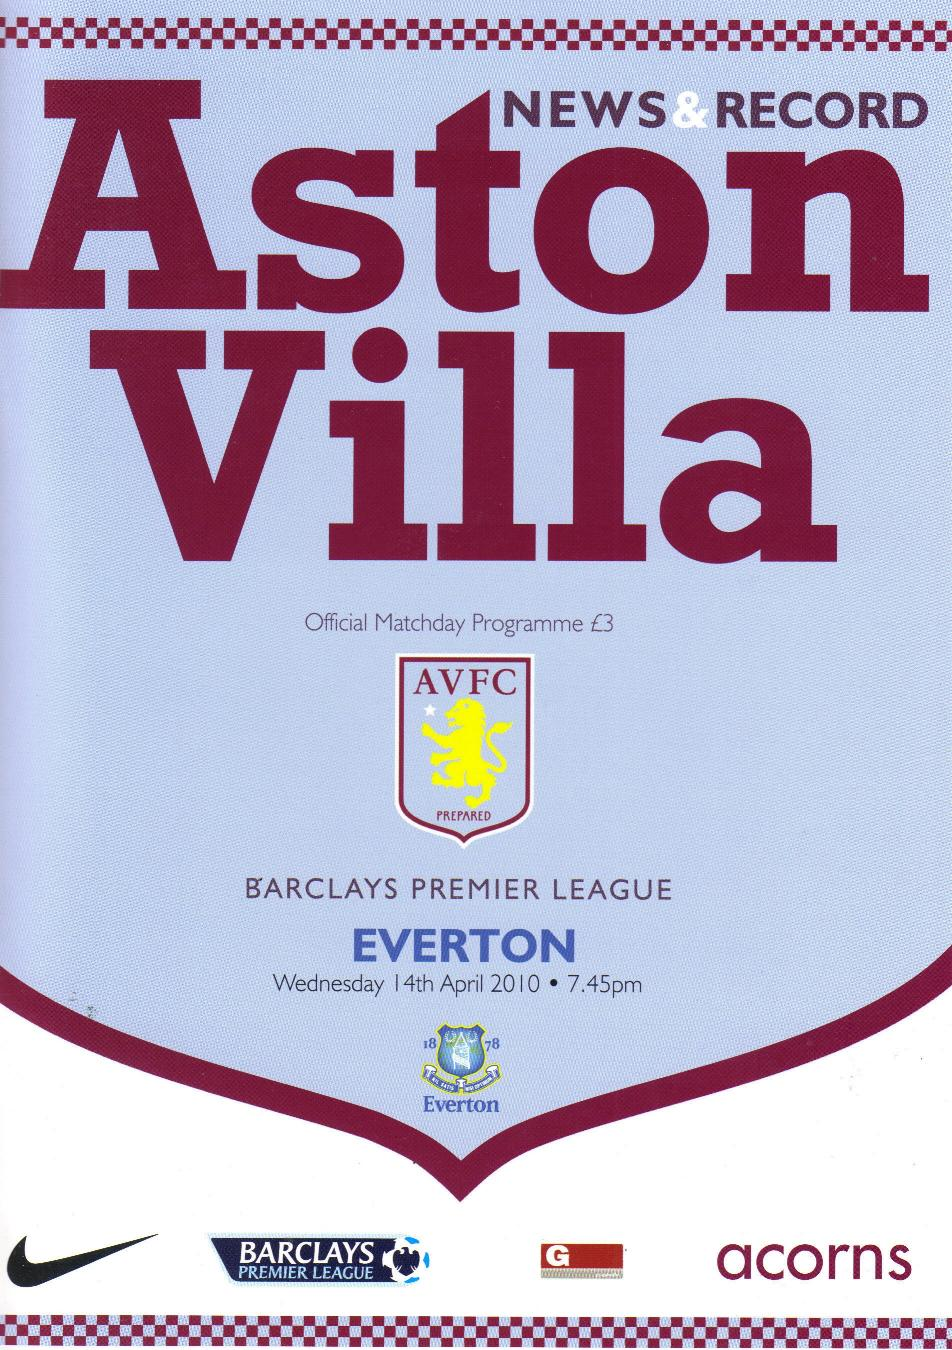 ASTON VILLA v EVERTON 2009/10